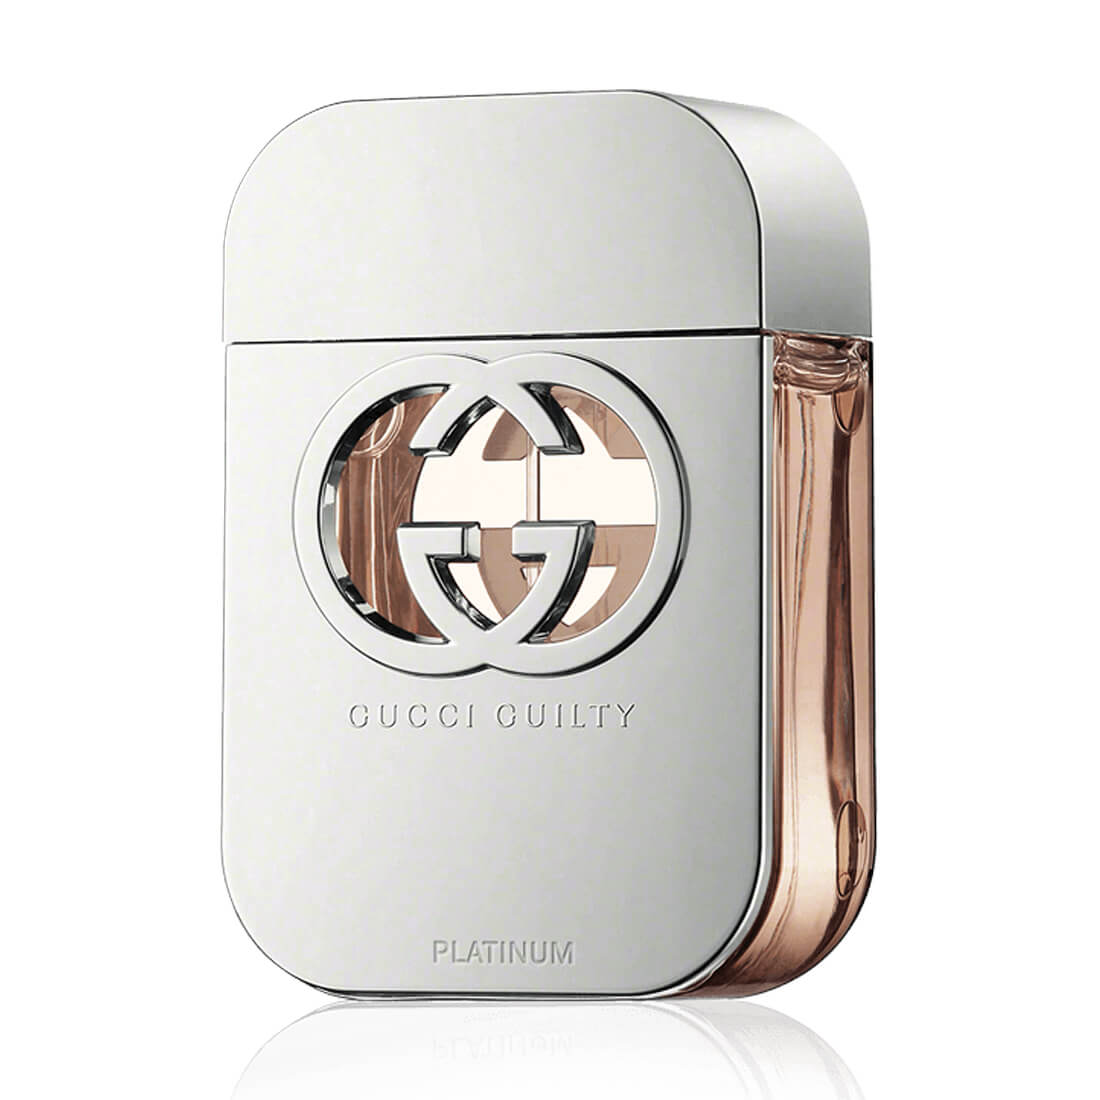 Gucci Guilty Platinum Edition Eau De Toilette 75ml